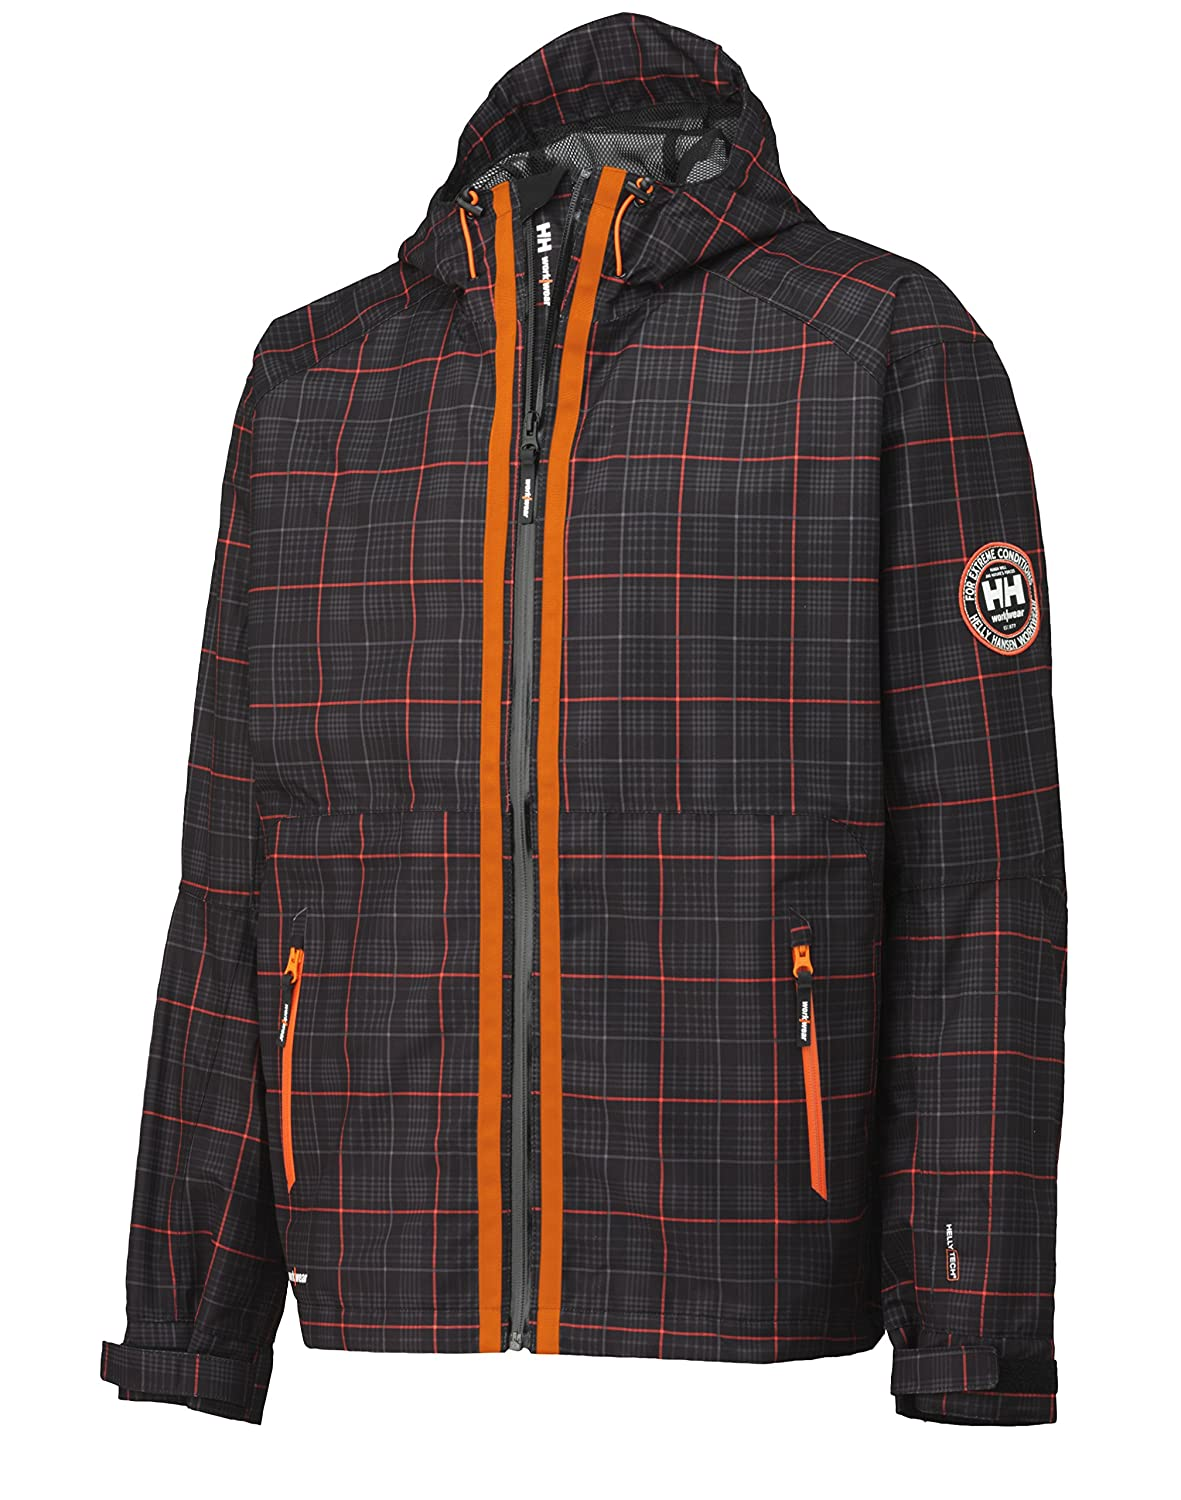 Helly Hansen Workwear Hochfunktionsjacke Tech Brussels Jacket W Check wind und wasserdicht, hoch atmungsaktiv M, orange, 34-071041-999-M